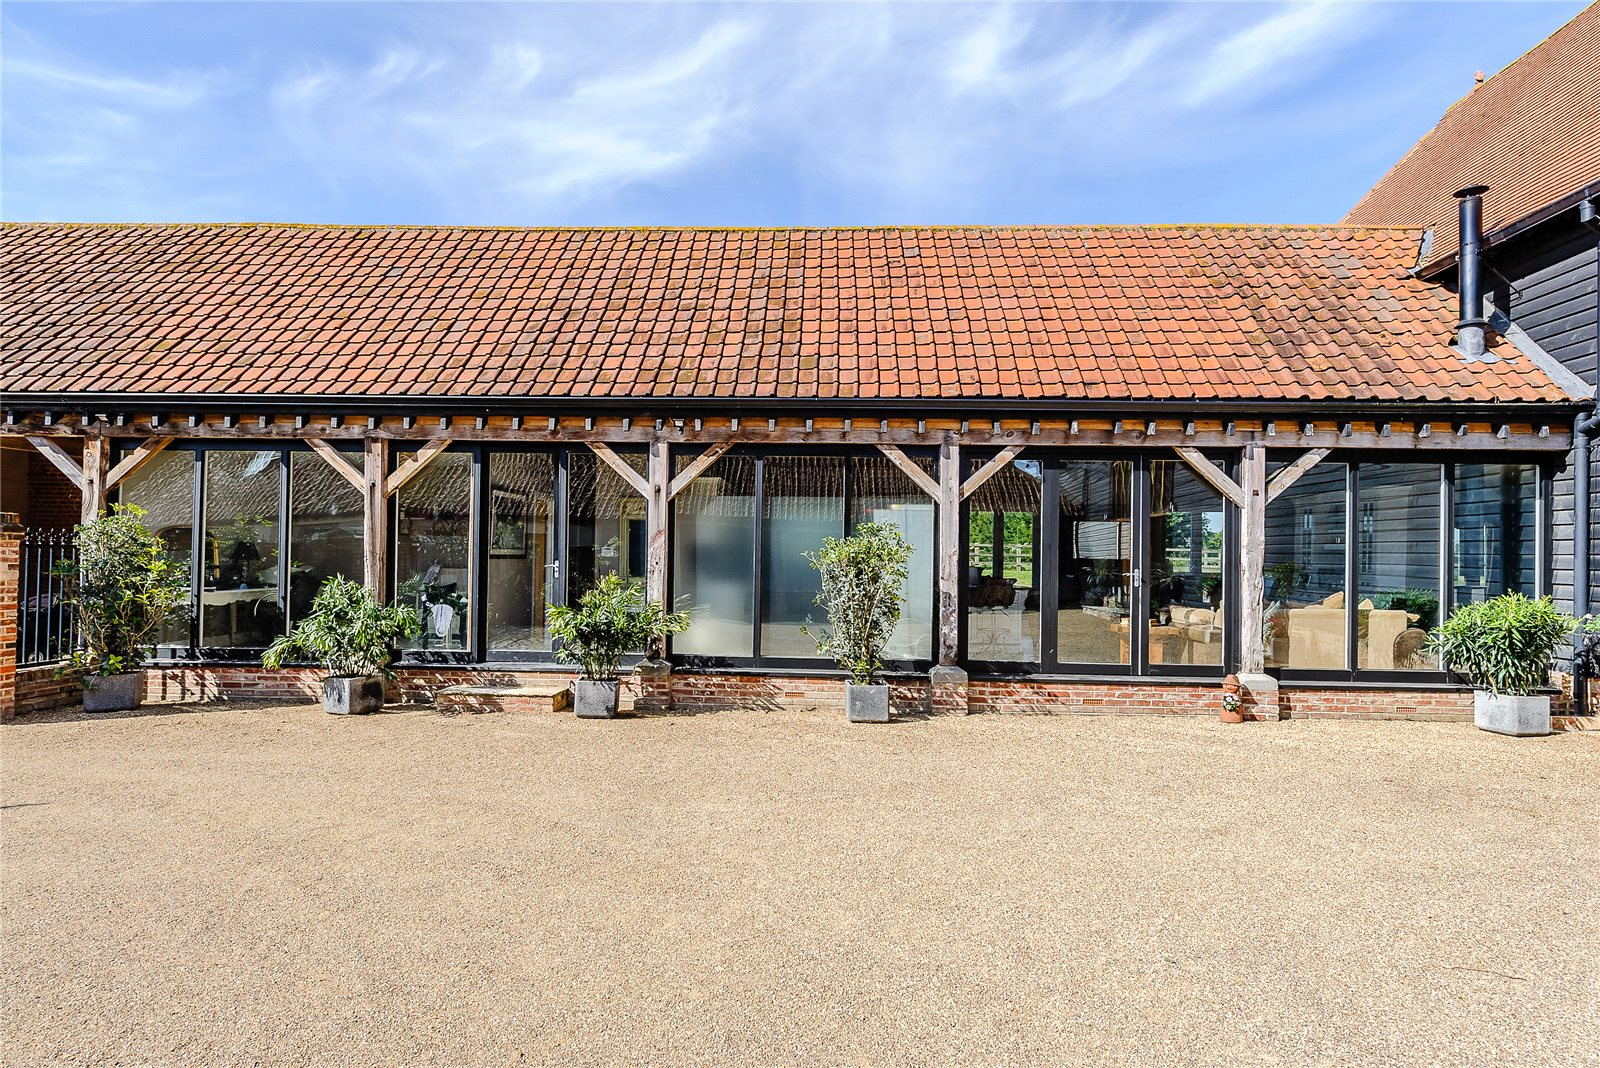 Additional photo for property listing at Envilles Barns, Little Laver, Ongar, Essex, CM5 Ongar, Inglaterra